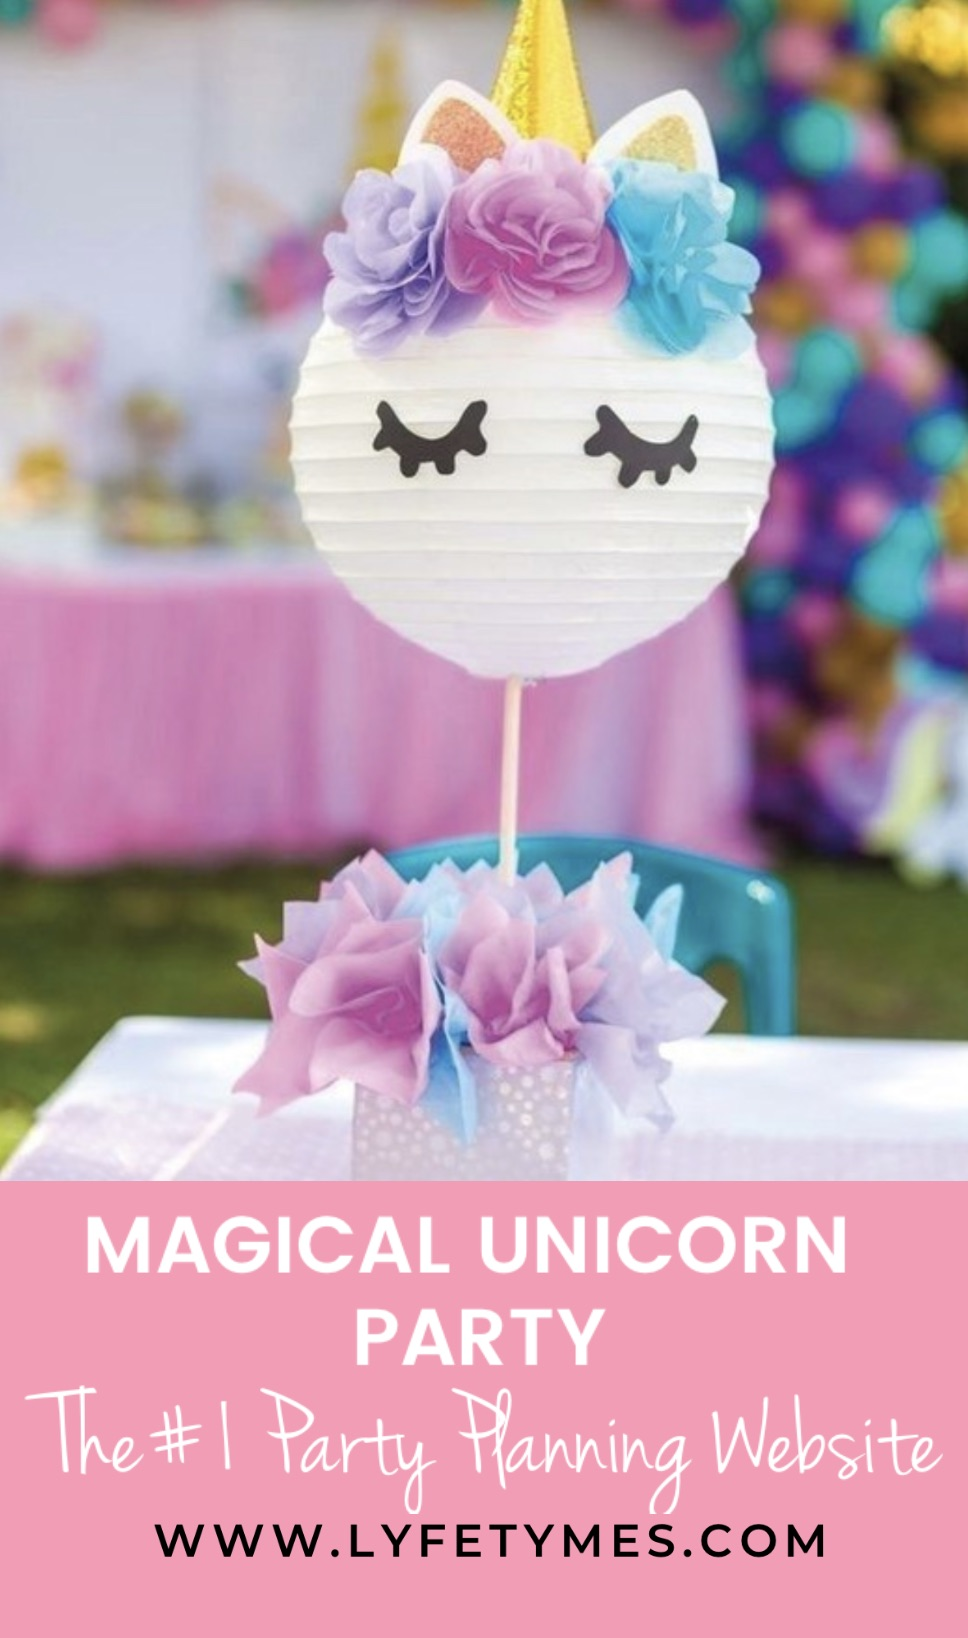 Party planning bog for the best party ideas. Plan any party with LYFETYMES. Plan a Unicorn Birthday Party. Party planning ideas for birthdays. #lyfetymes #partyplanning #unicorn #unicornparty #girlbirthday #birthdayideas